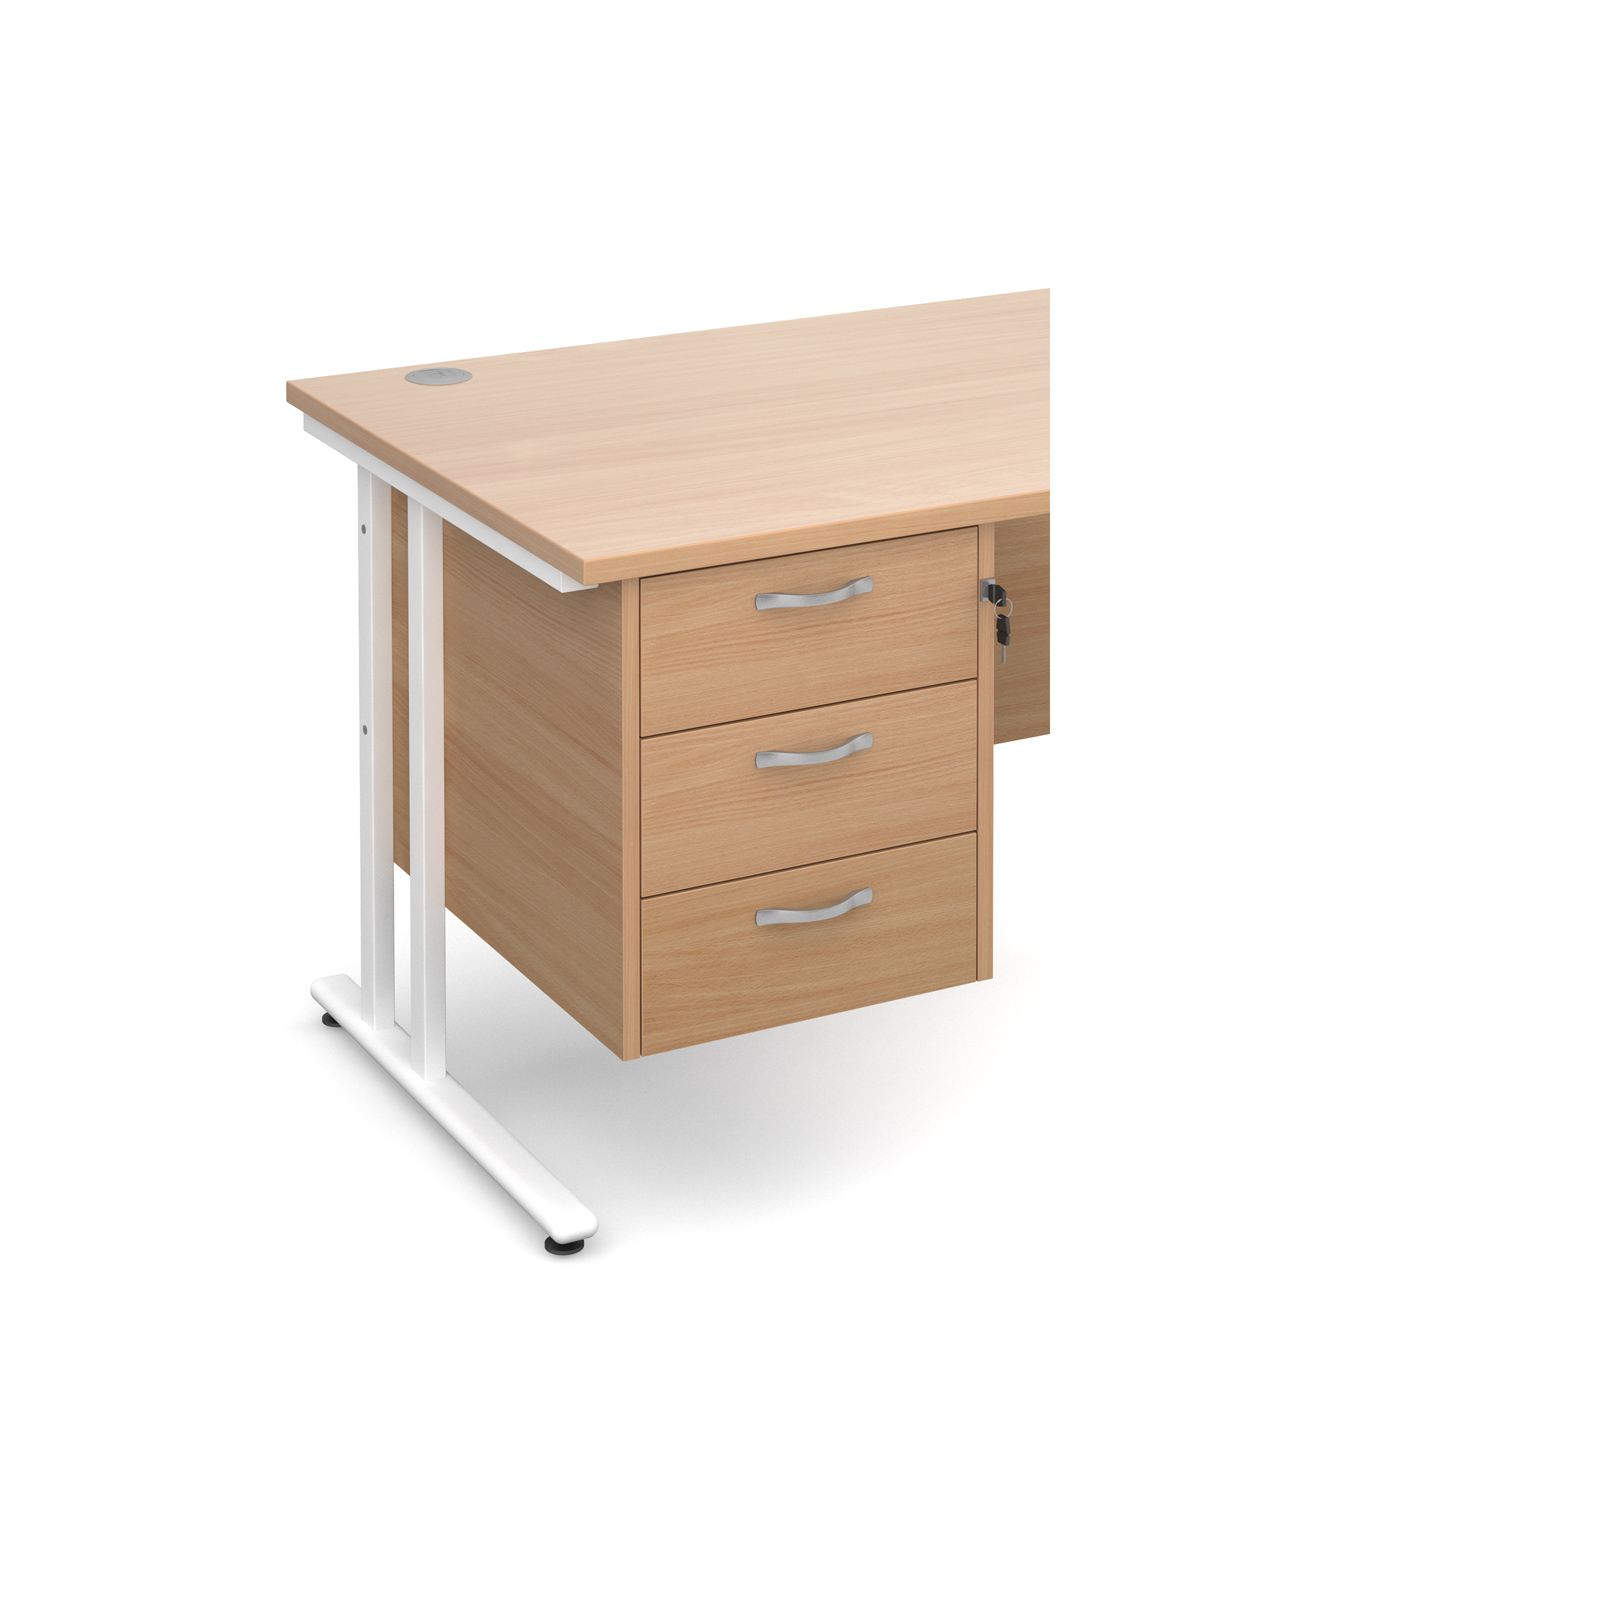 3 Drawer Fixed Pedestal in beech